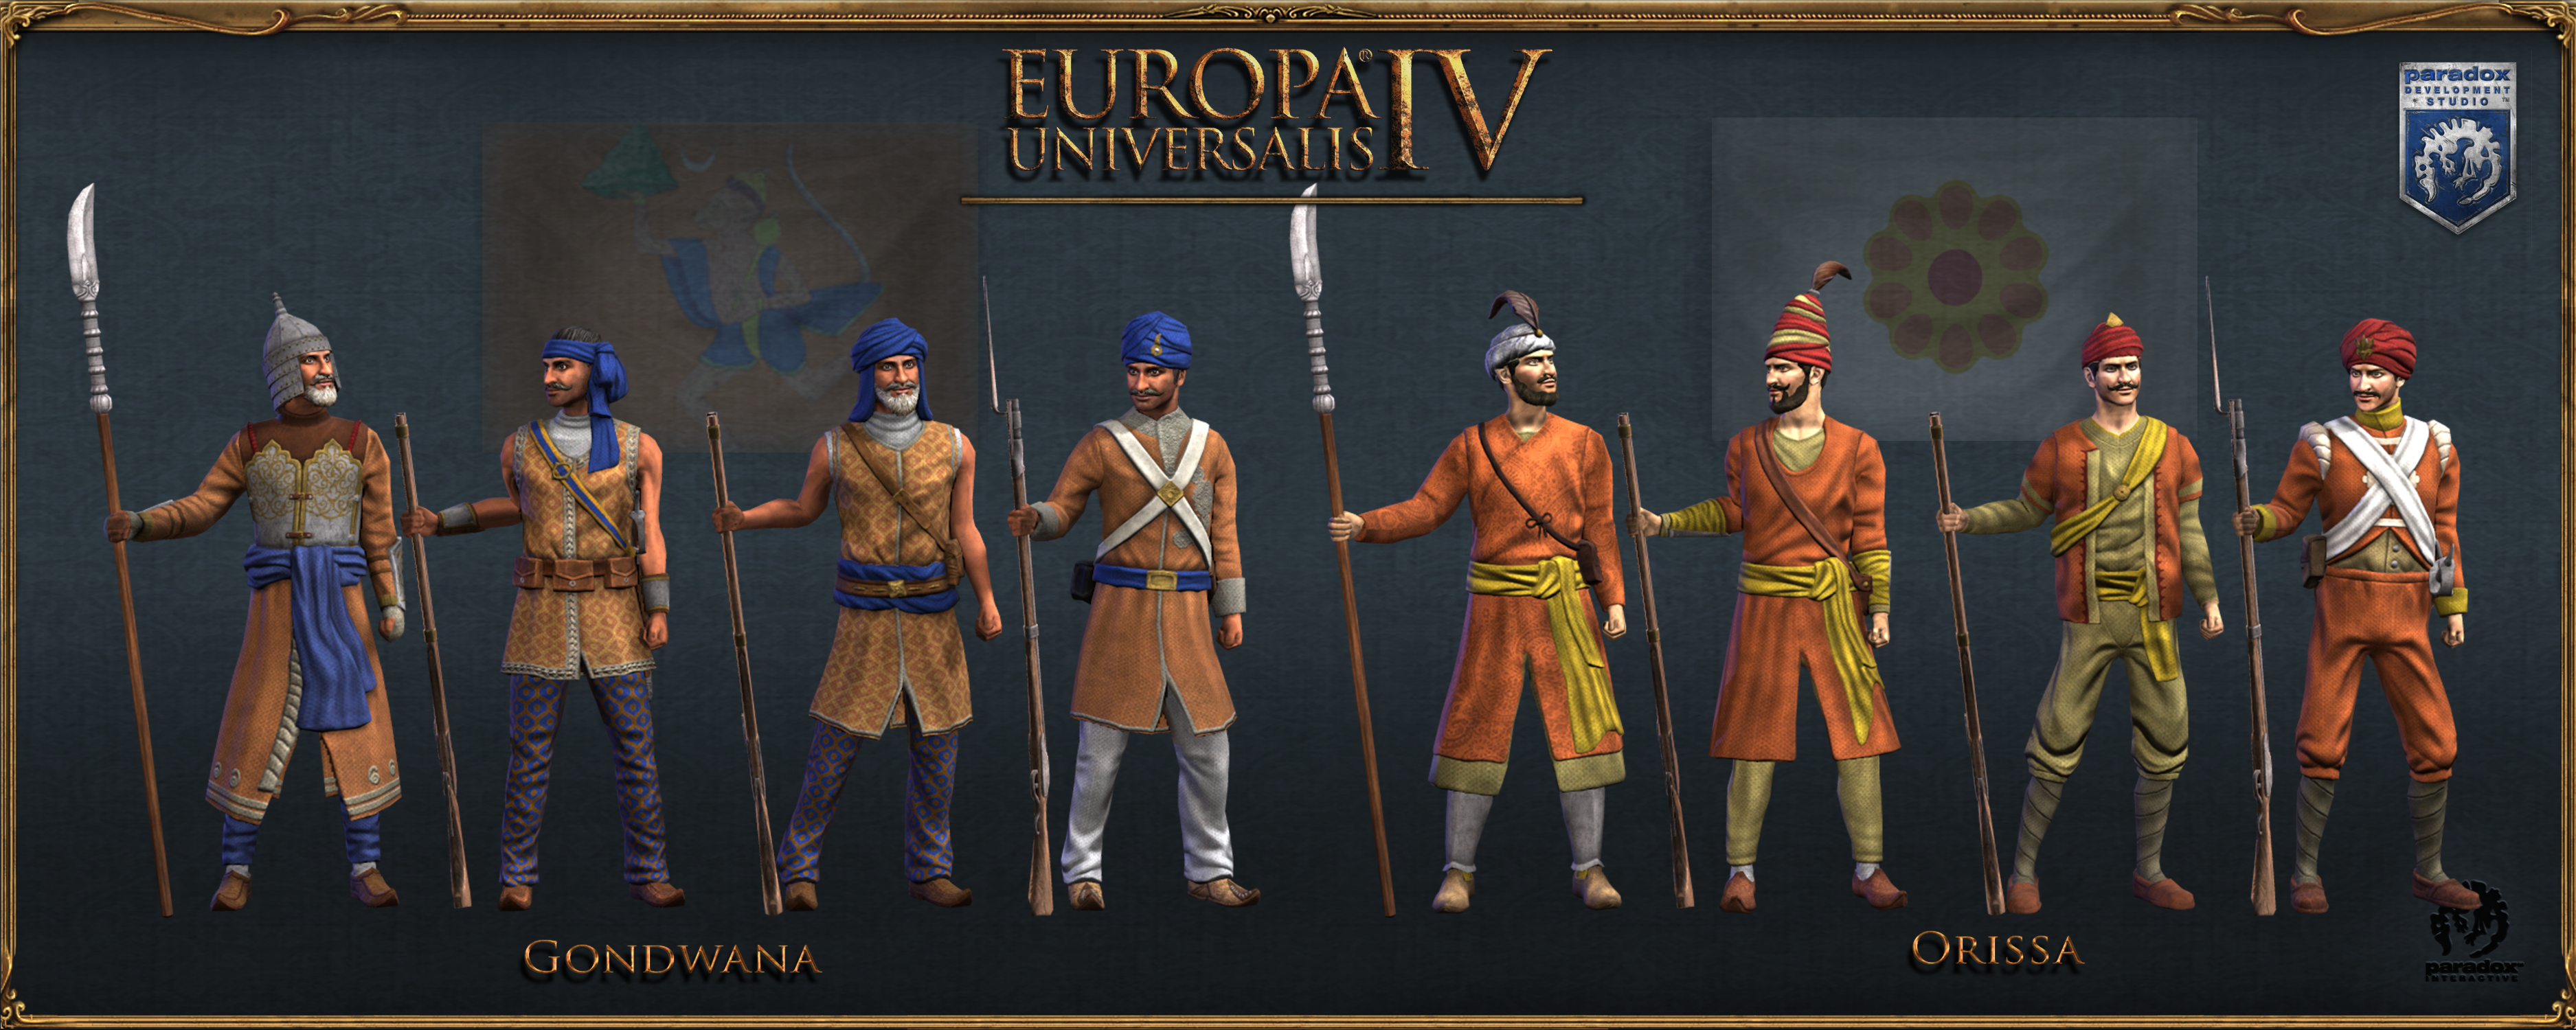 EU4 - Development Diary - 21st of August 2018 | Paradox Interactive